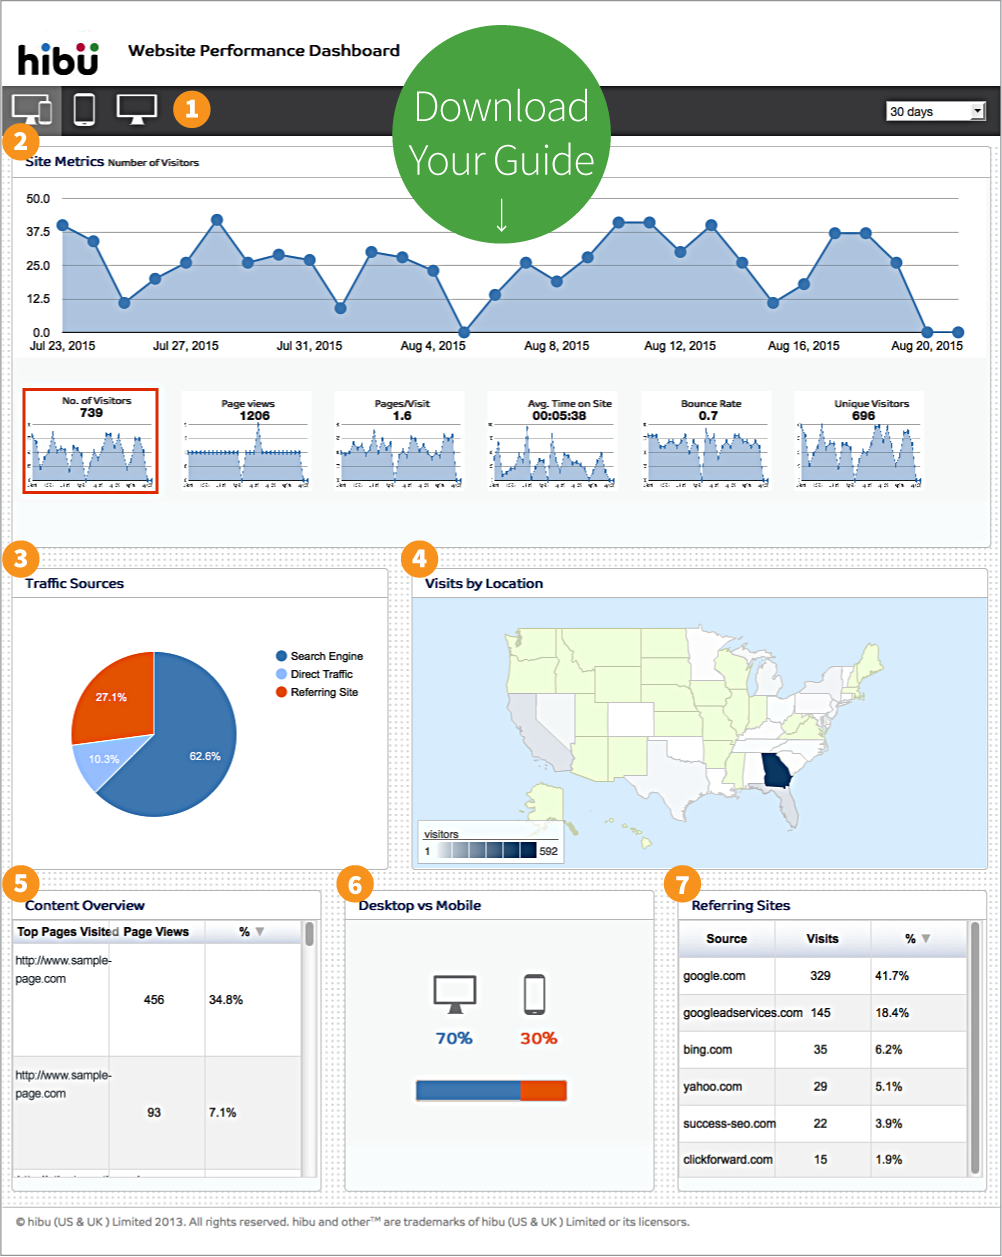 hibu-website-analytics-guide-04-06-2016f